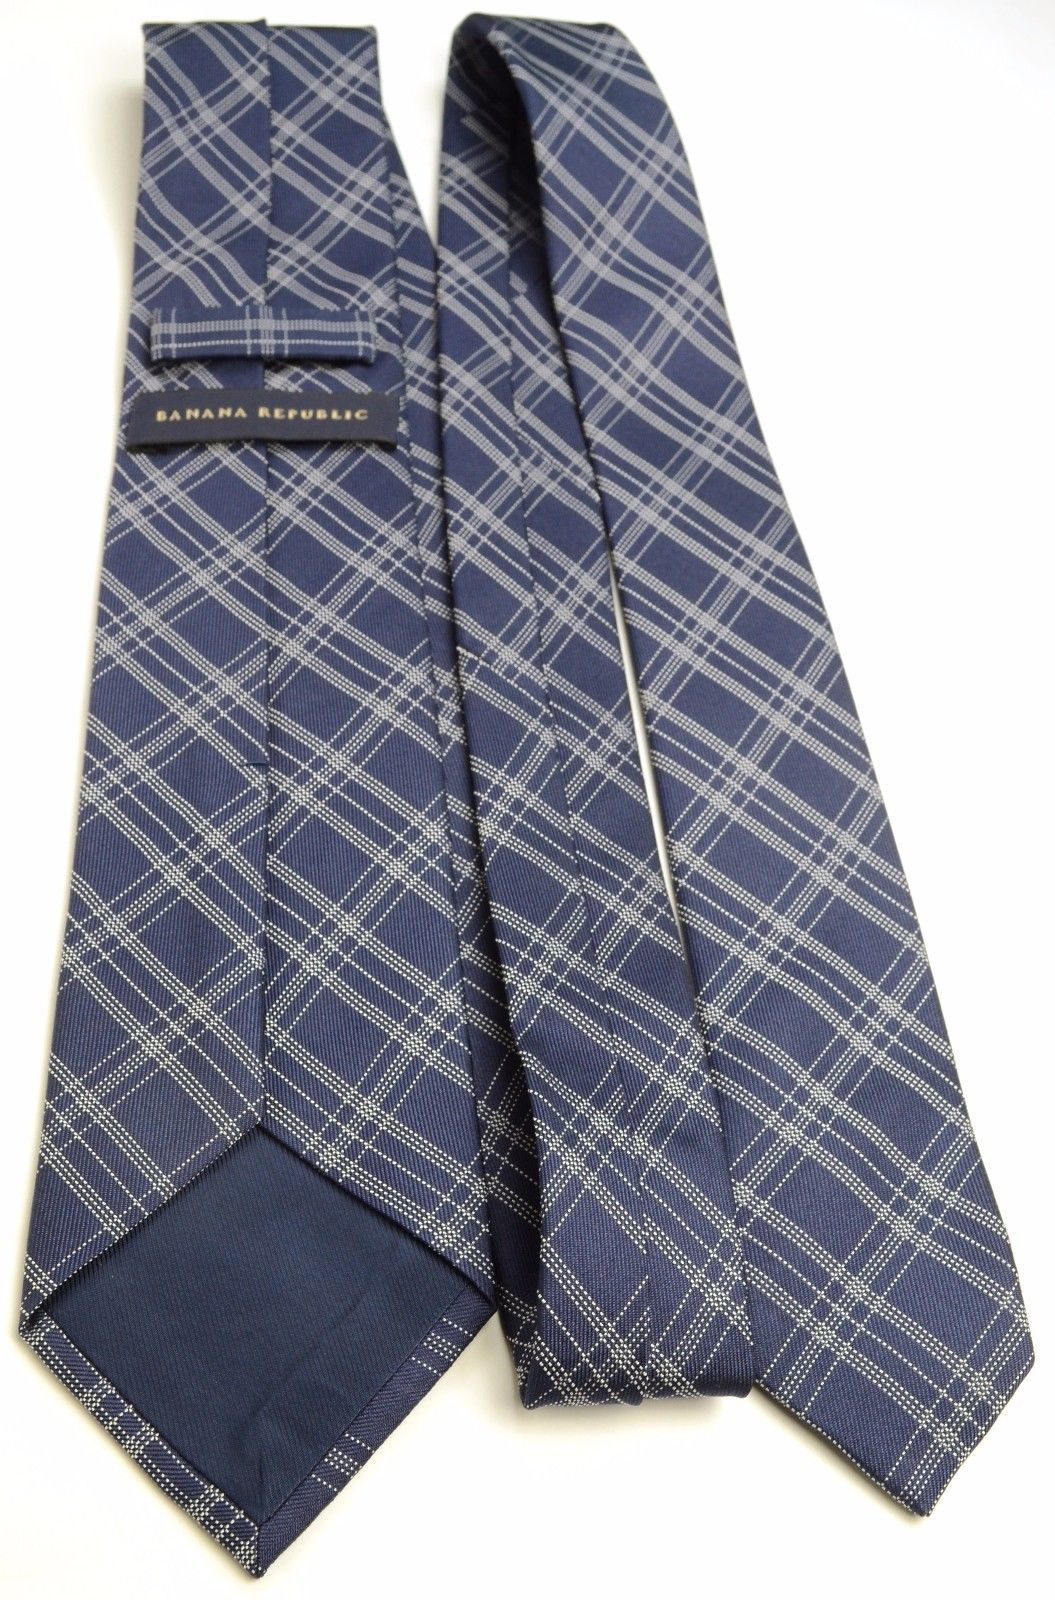 Navy Plaid Silk Tie | Banana Republic Blue Slim Necktie